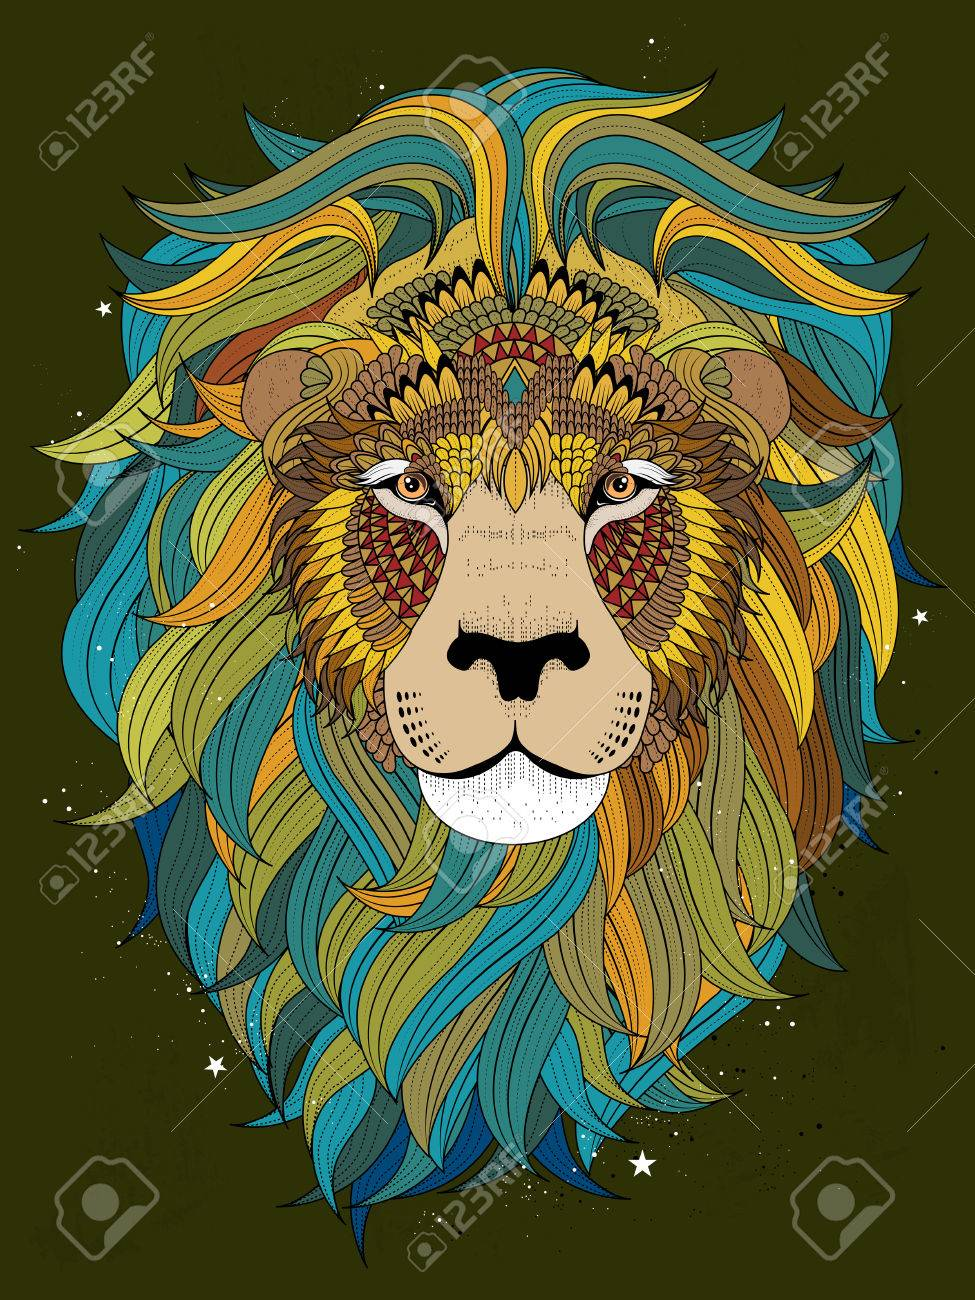 Lion Head Coloring Pages For Adults. attractive fluffy lion head  adult coloring page Stock Vector 54051587 Attractive Fluffy Lion Head Adult Coloring Page Royalty Free